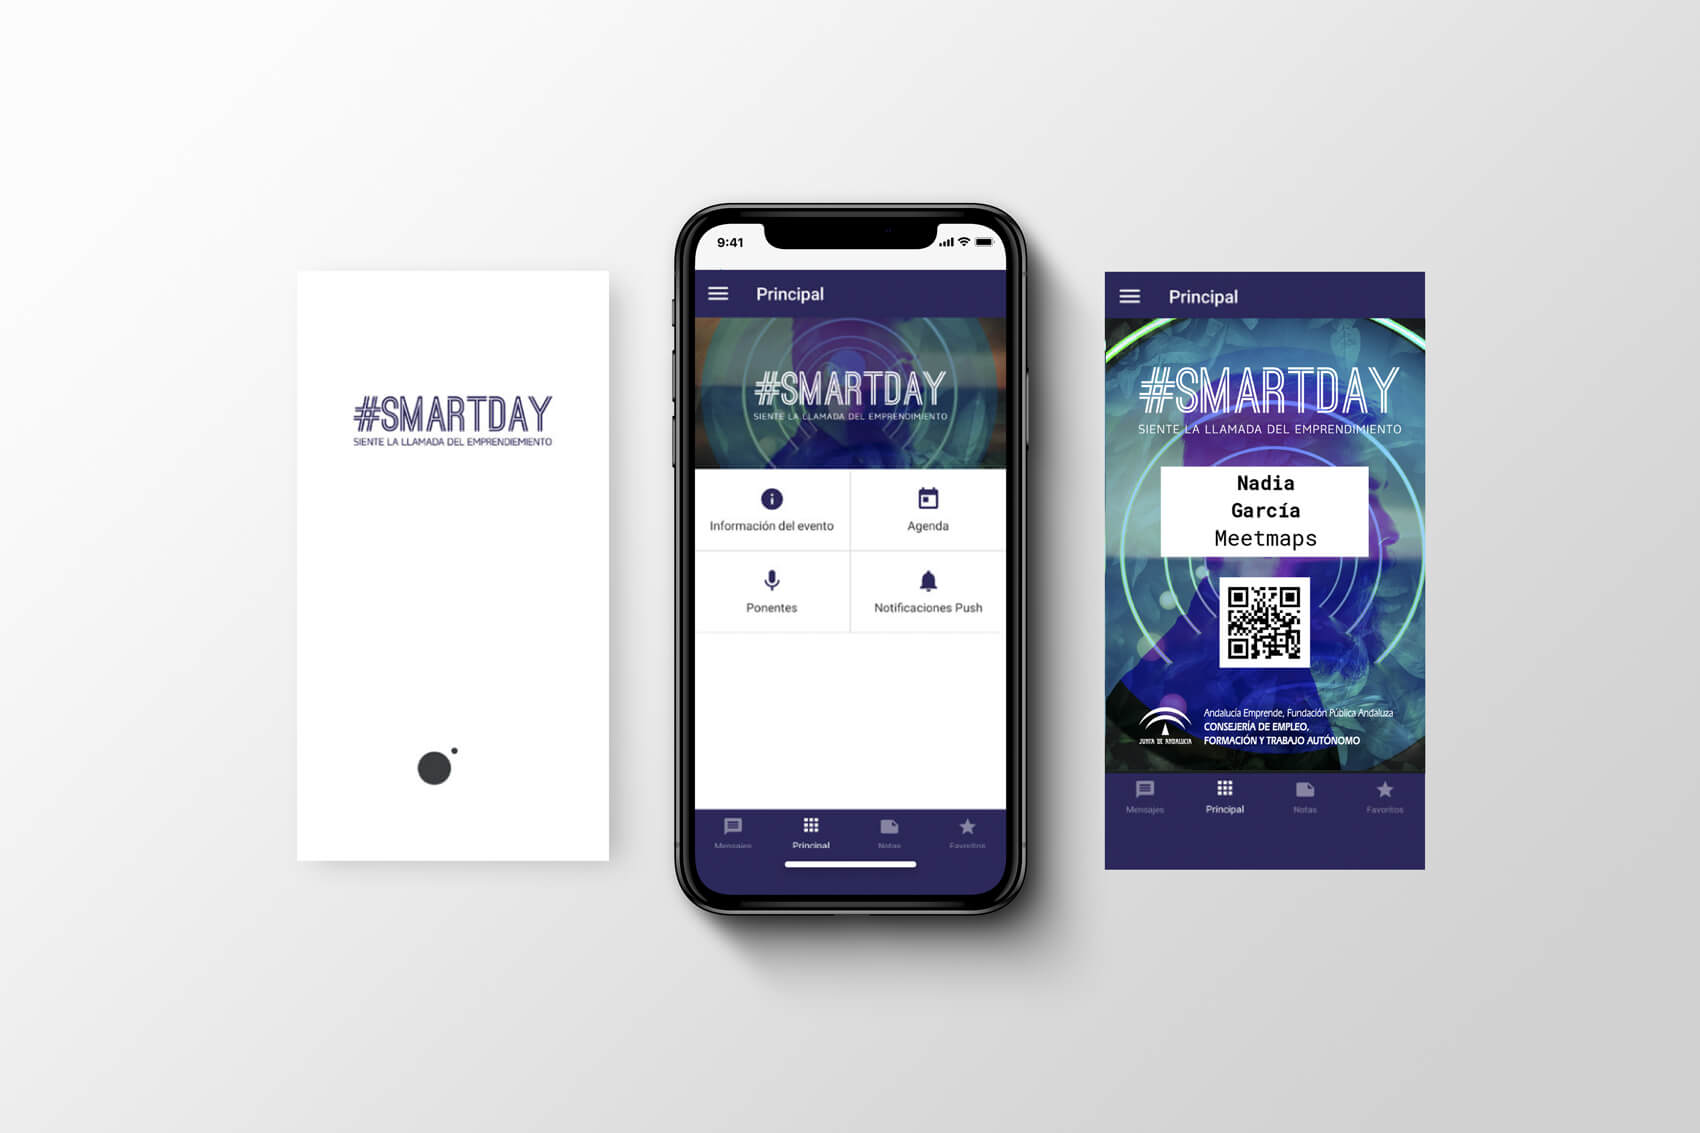 Smartday-4